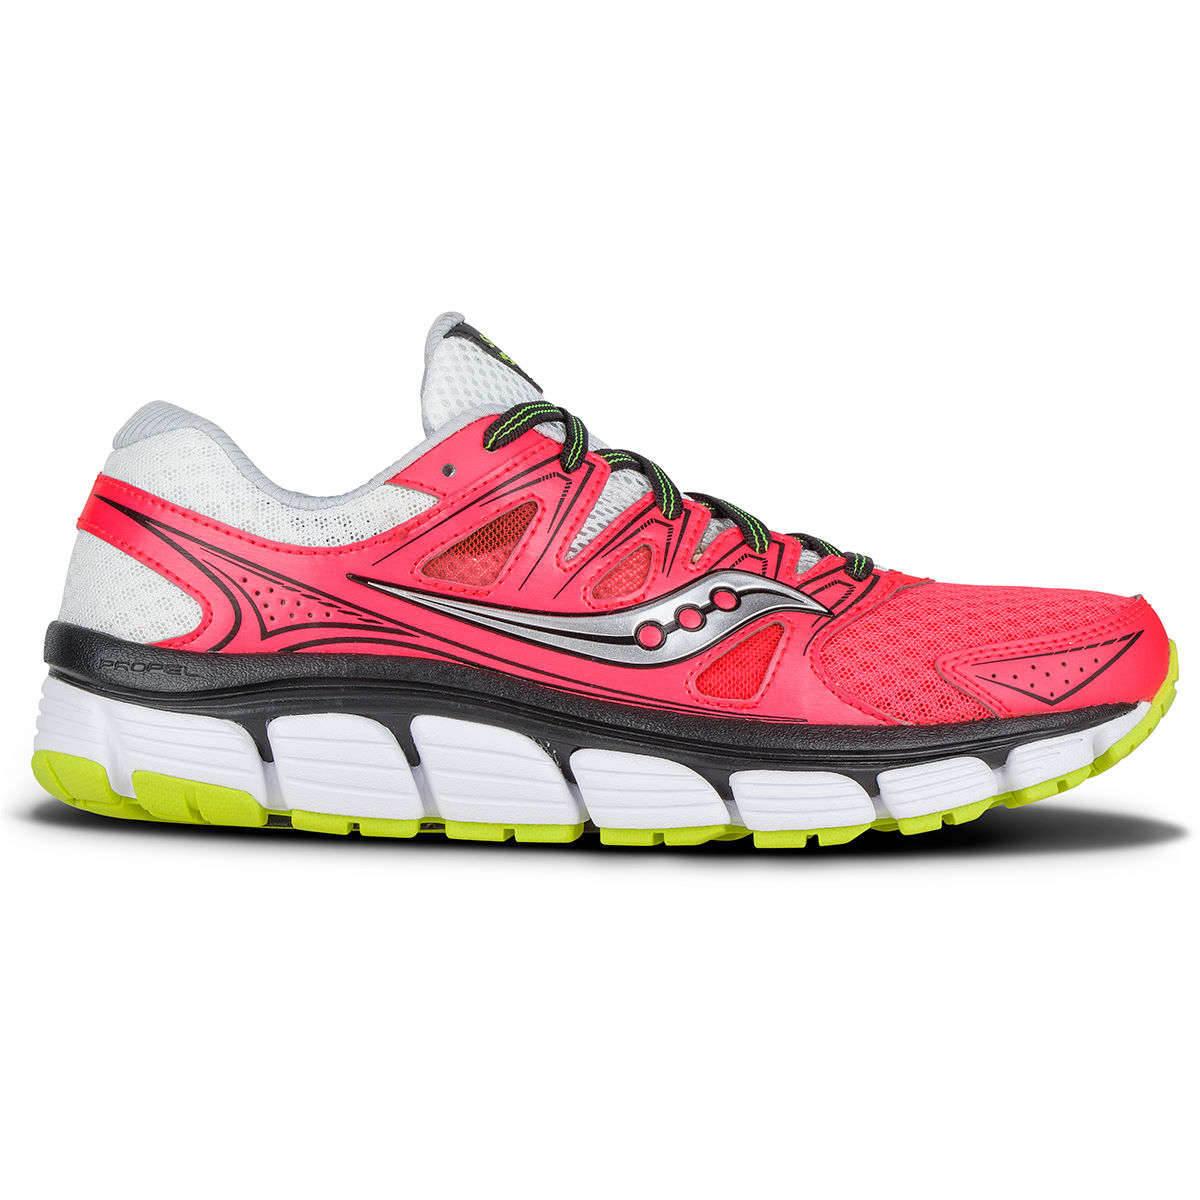 Saucony Womens Propel Vista Shoes (AW16)   Cushion Running Shoes